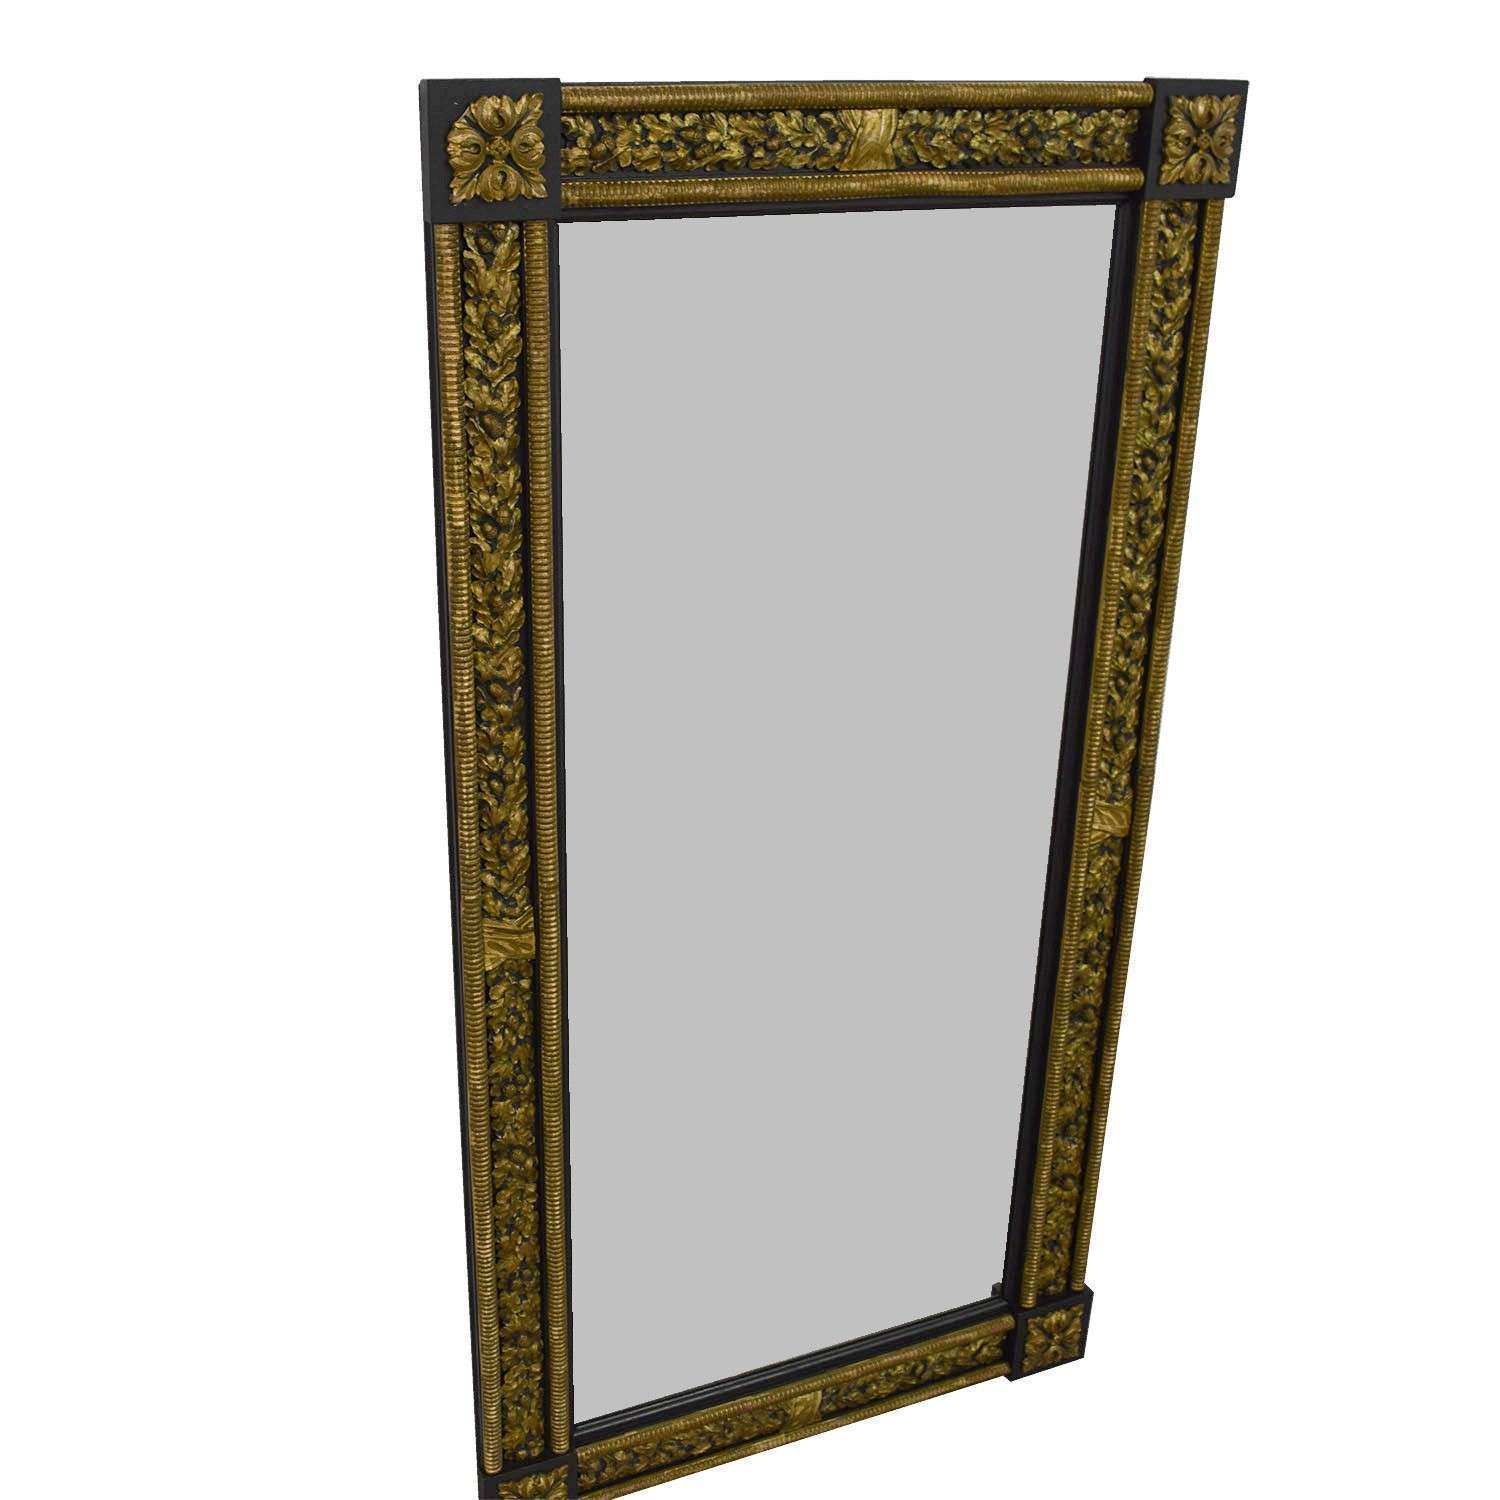 OFF Gold and Silver Framed Wall Mirror Decor